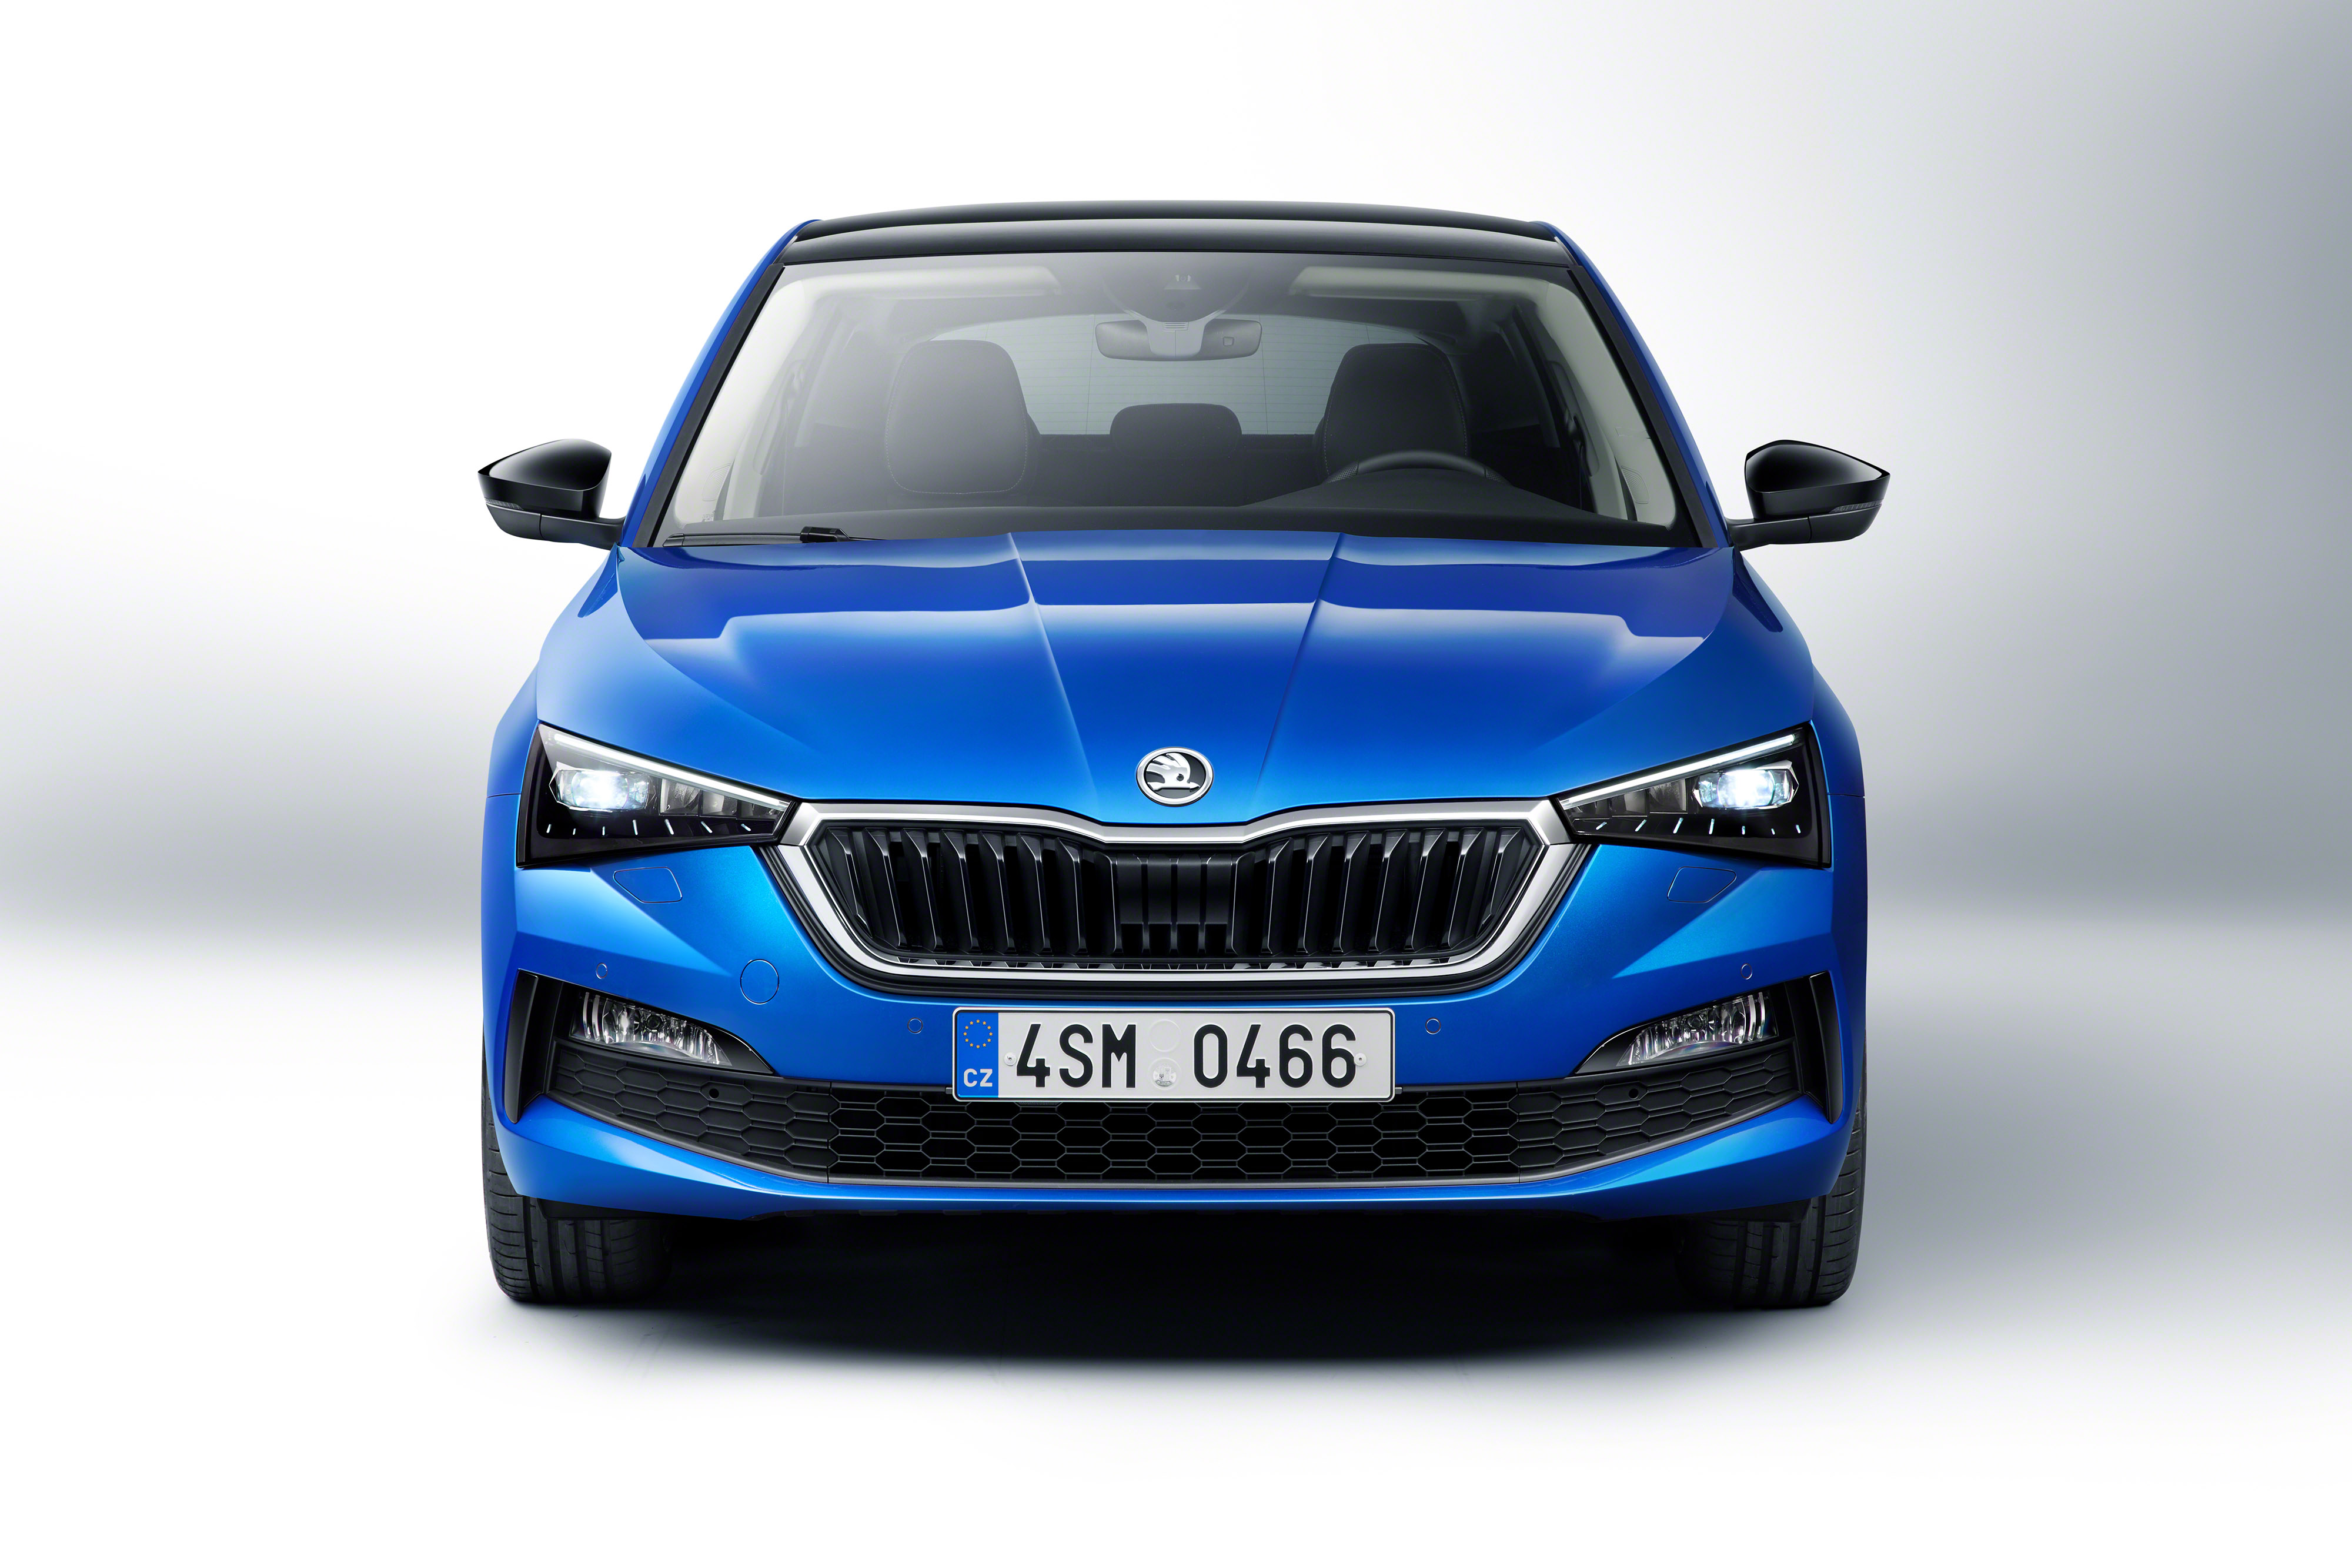 Skoda Scala 2019 Price Specs Interior Tech Rivals And Release Date The Week Uk